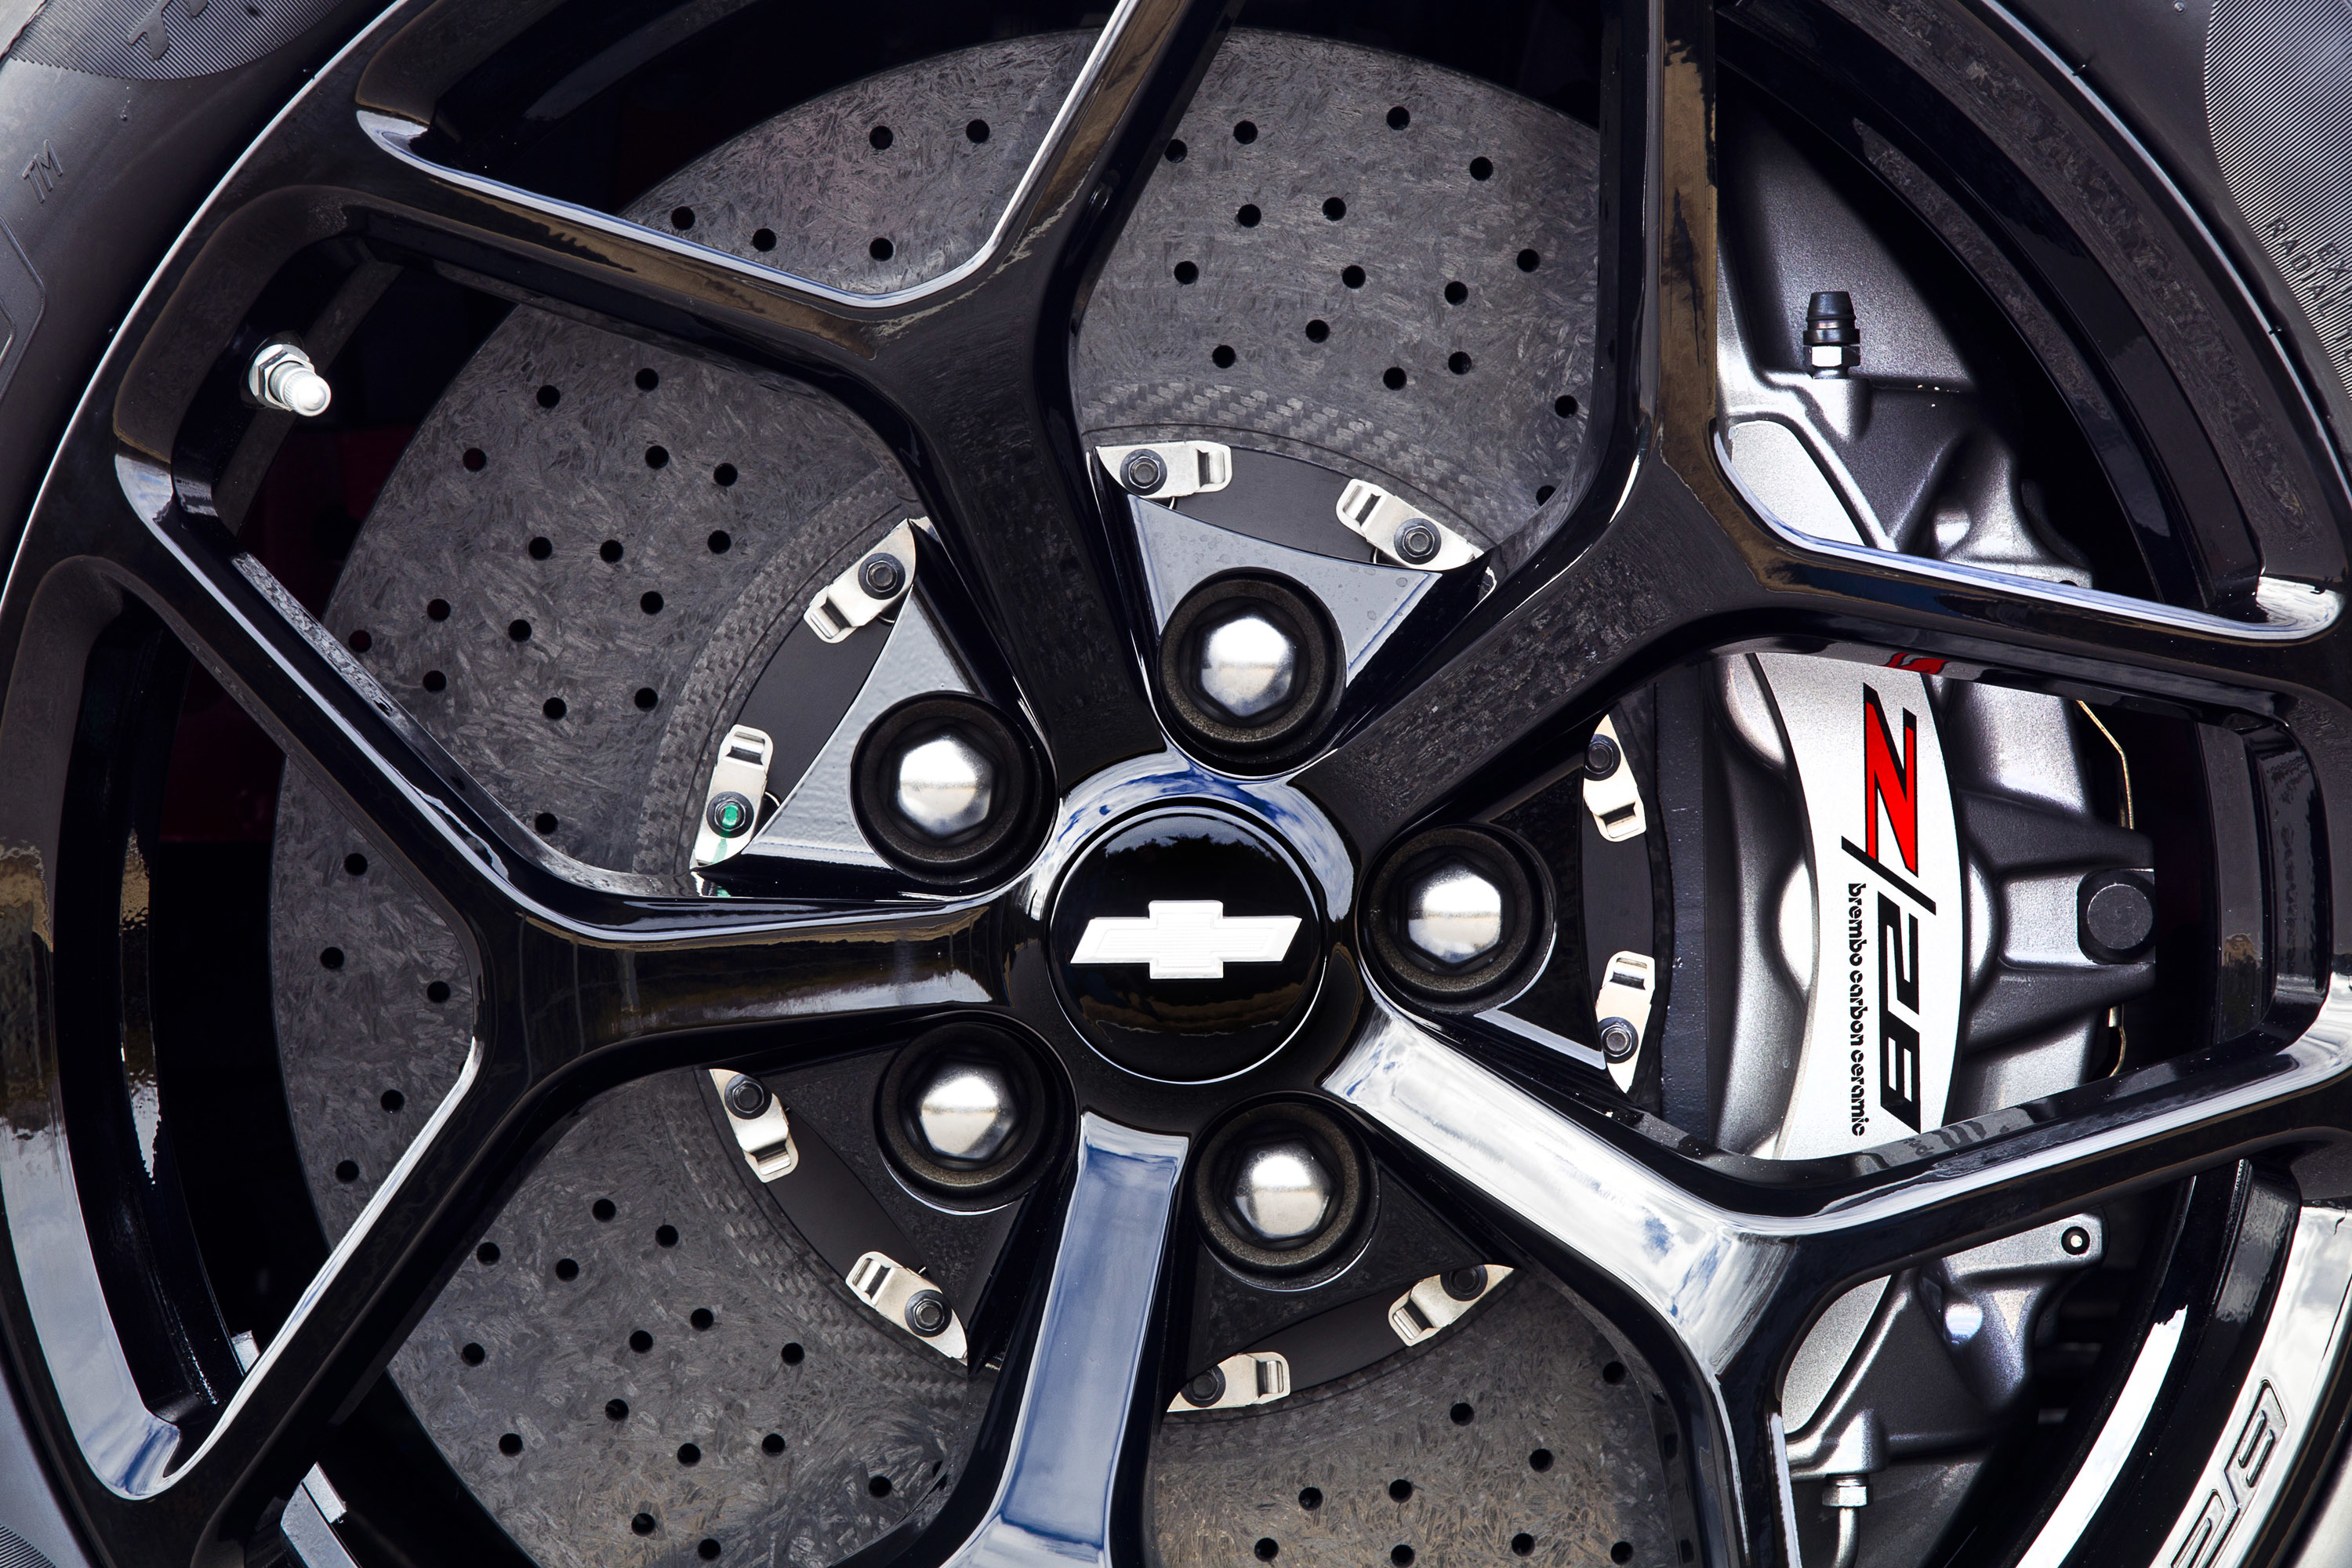 sota wheels detail aftermarket rims awol gallery silverado truck chevrolet lifted offroad